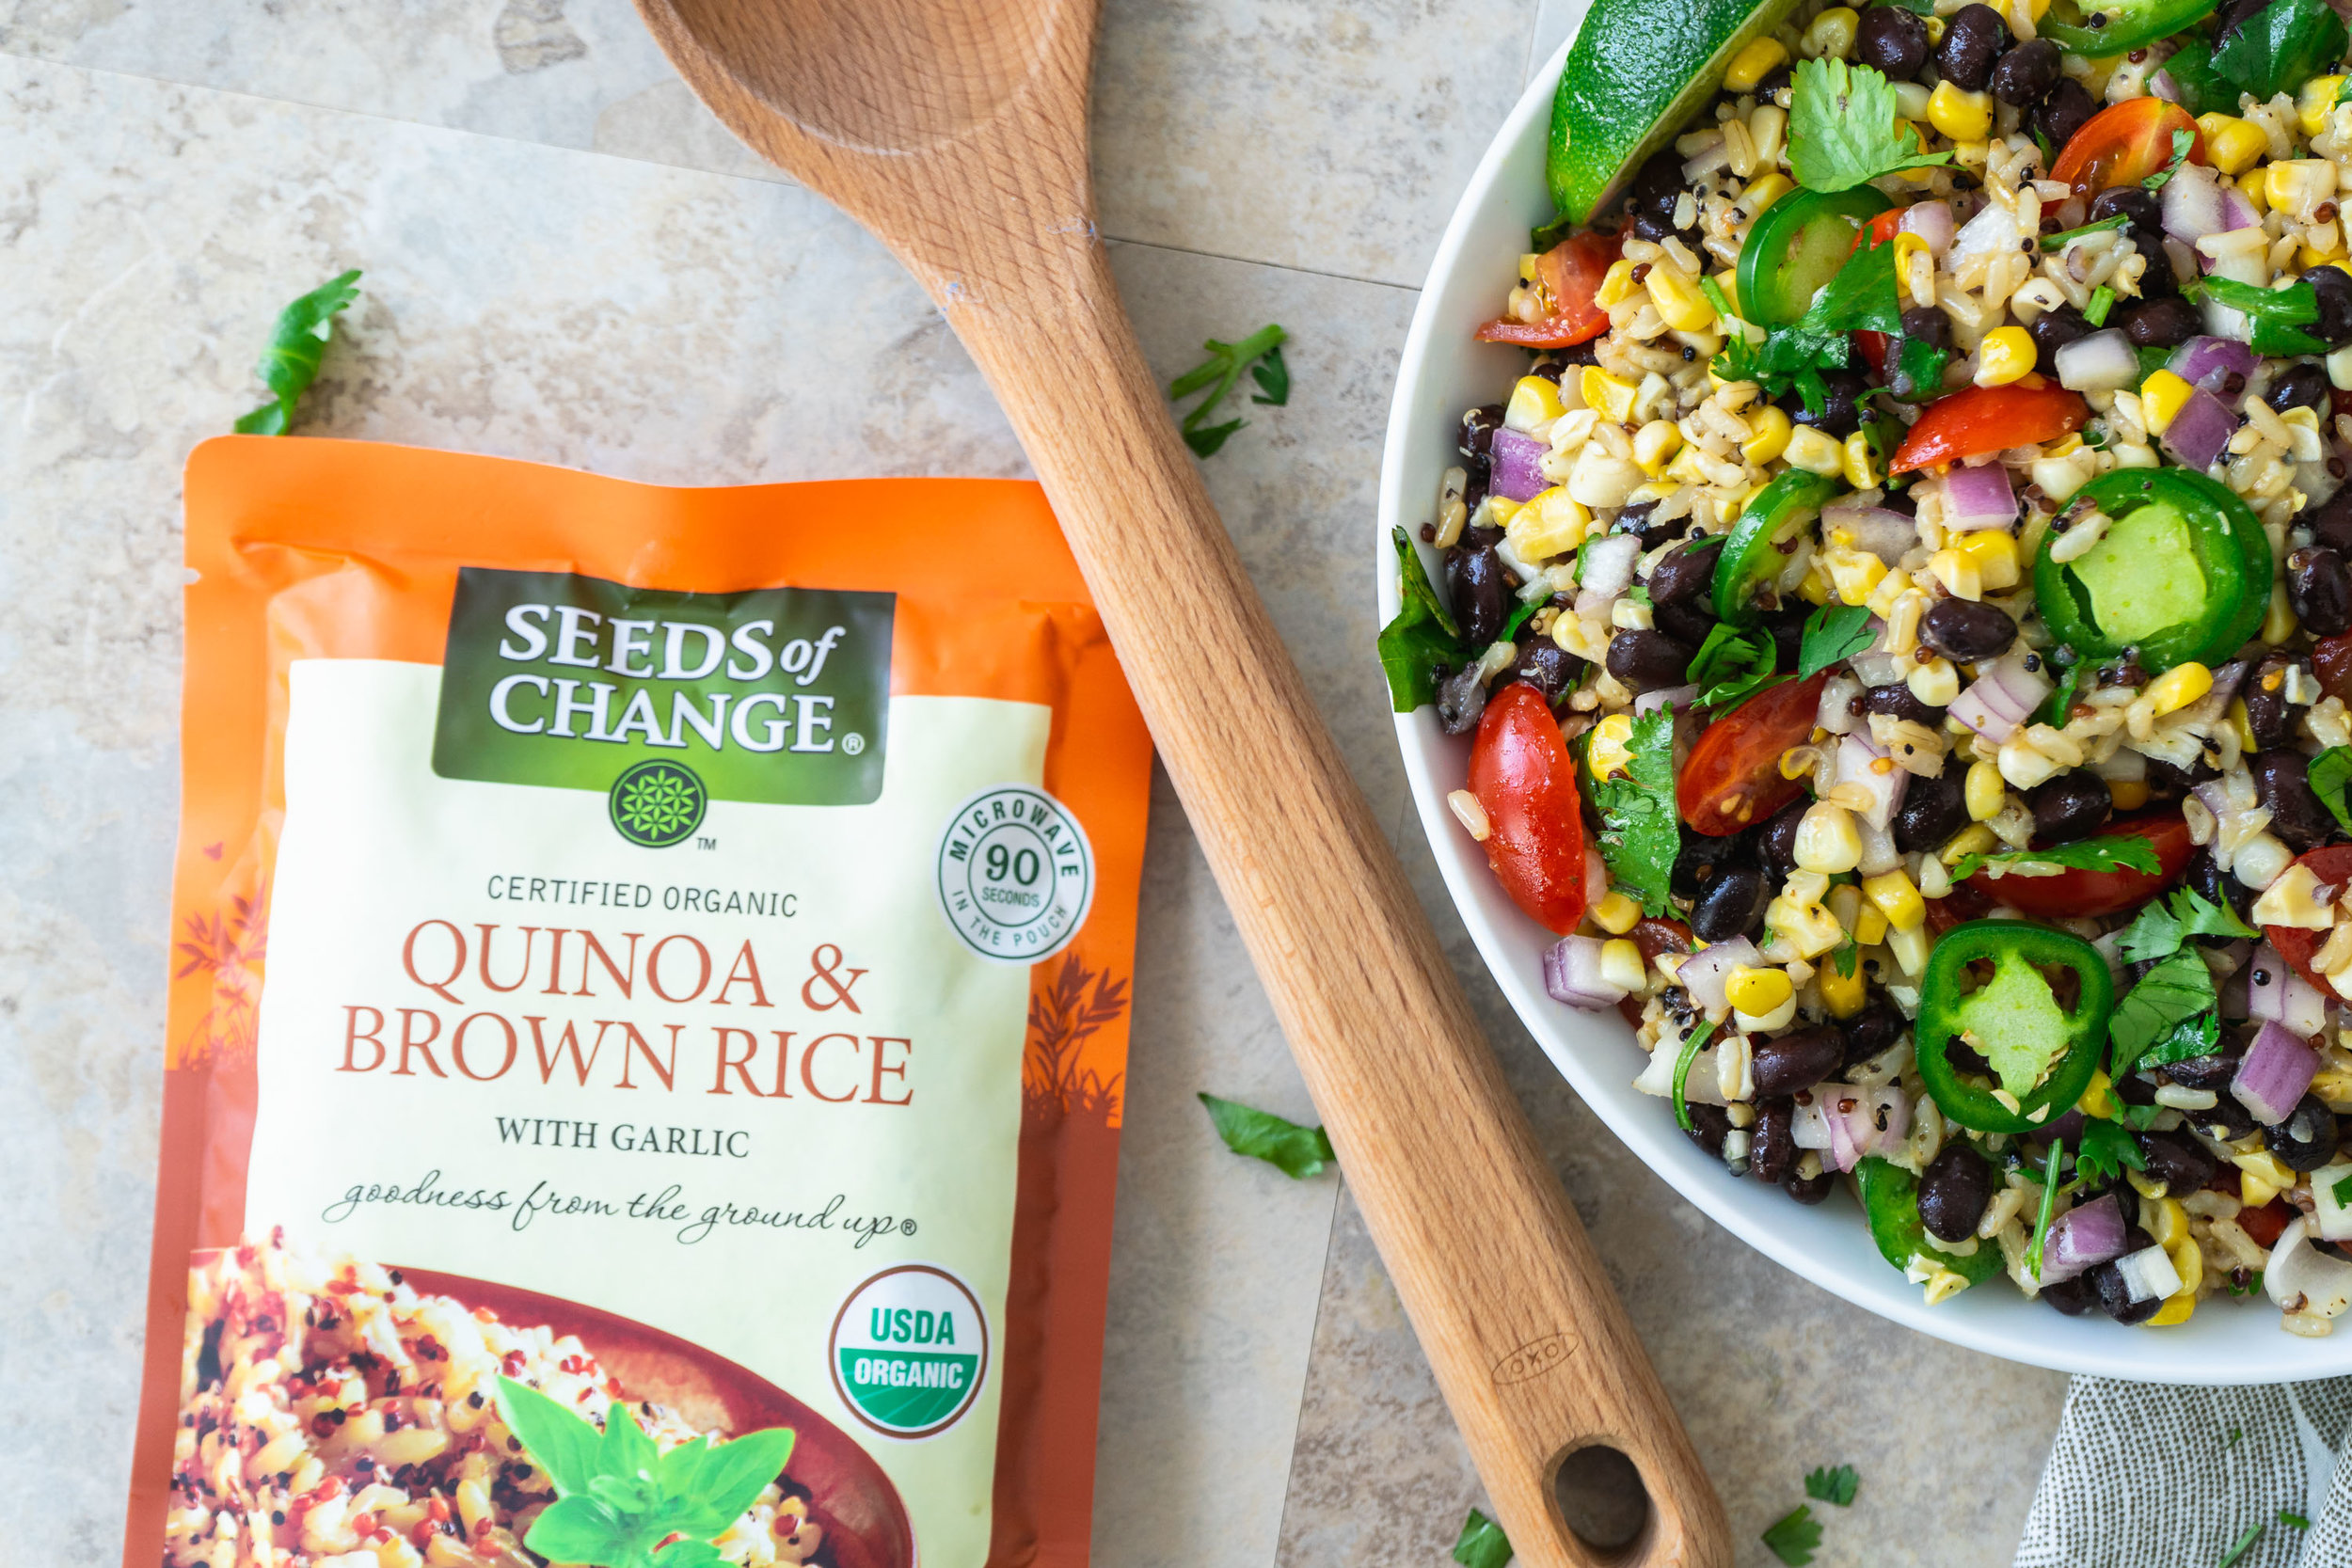 Quinoa and Brown Rice Salad with Black Beans and Honey-Lime Vinaigrette Seeds of Change 1.jpg